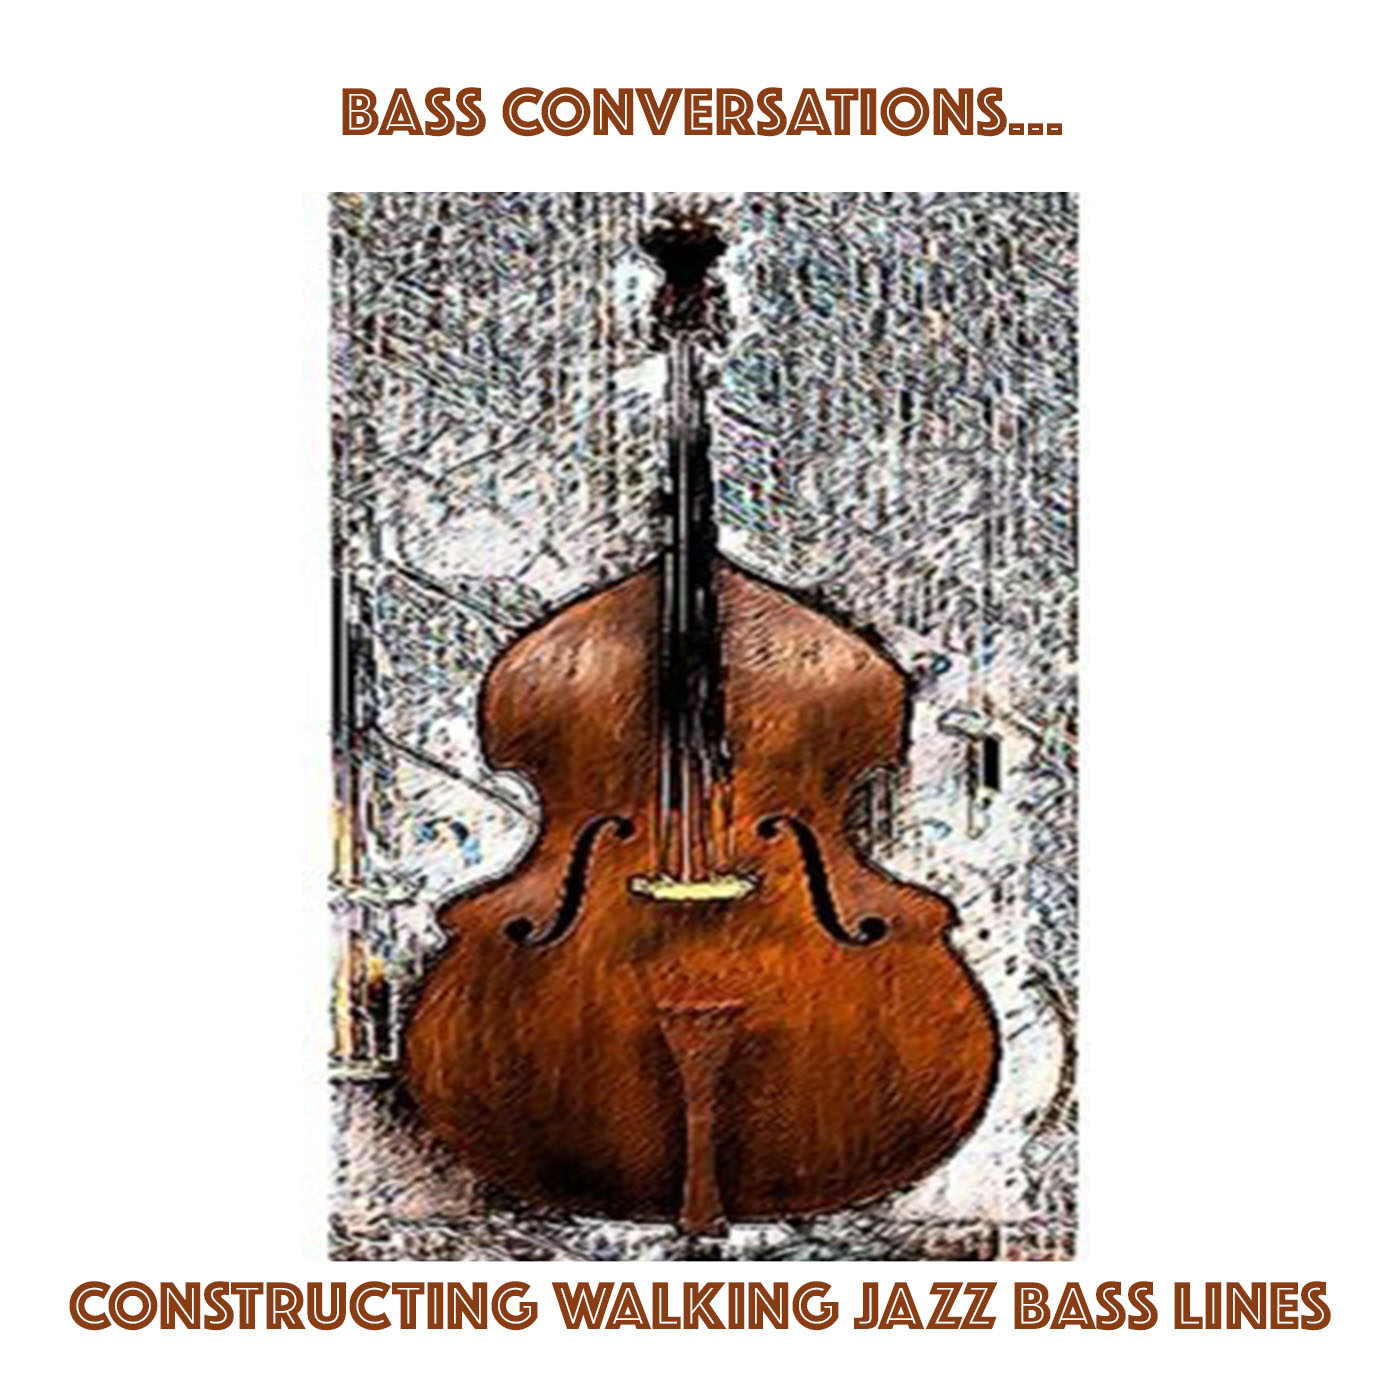 Bass Conversations episode 0002